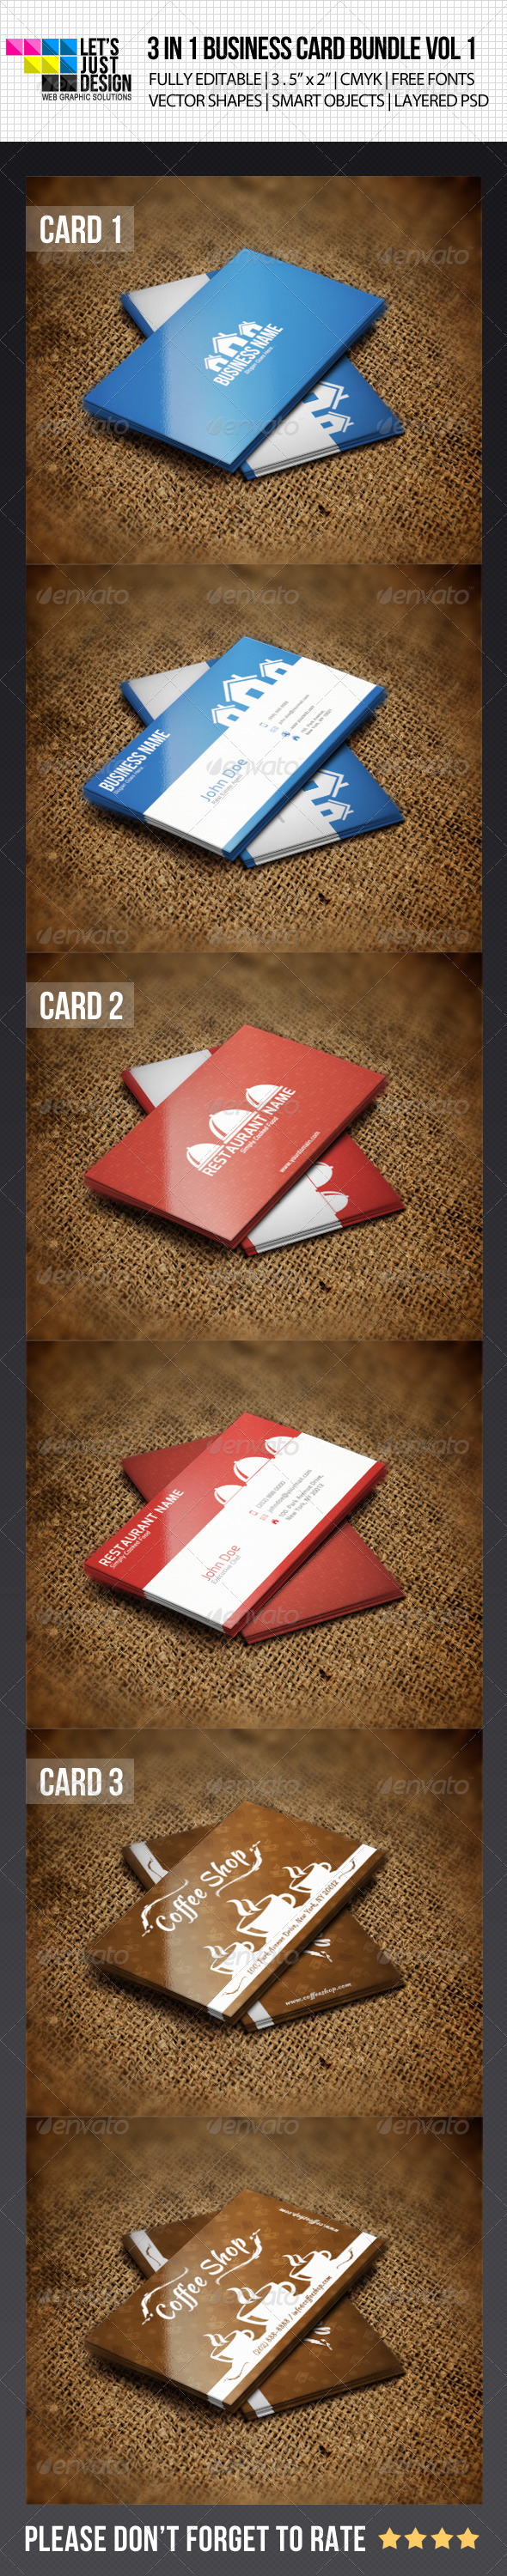 3 IN 1 Business Card Bundle Vol 1 - Industry Specific Business Cards